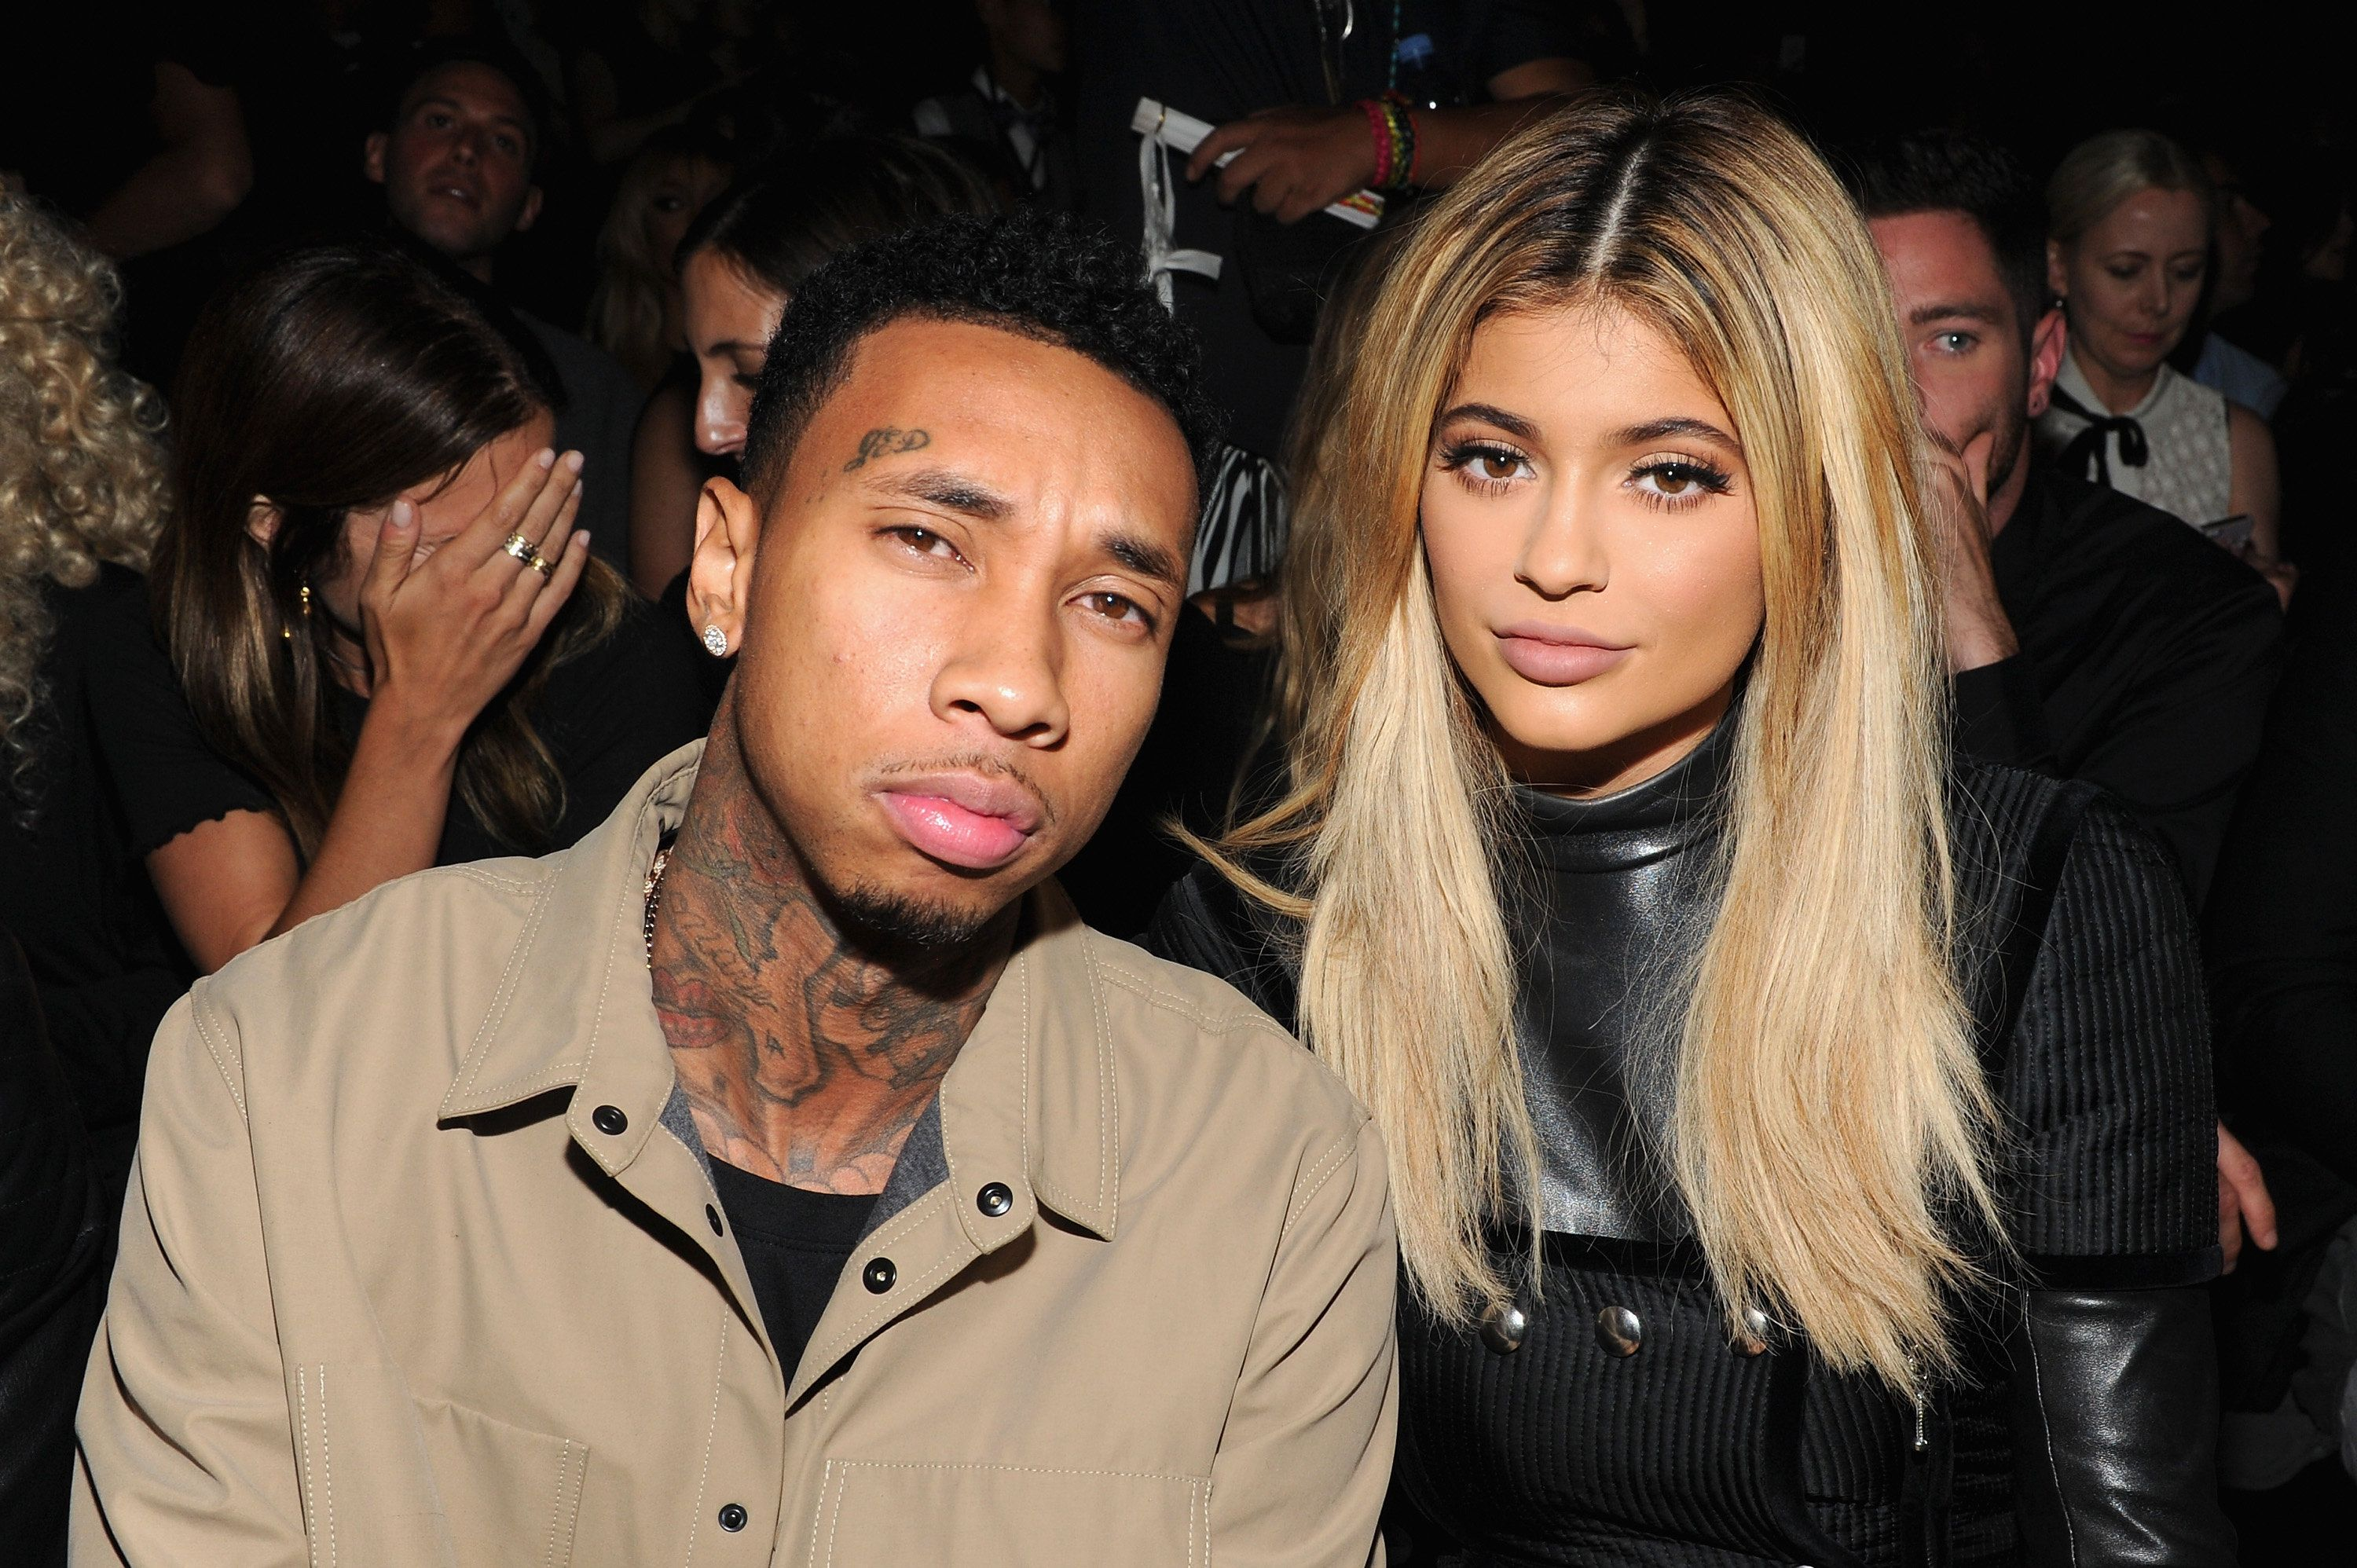 Tyga and Kylie Jenner are probably together again.